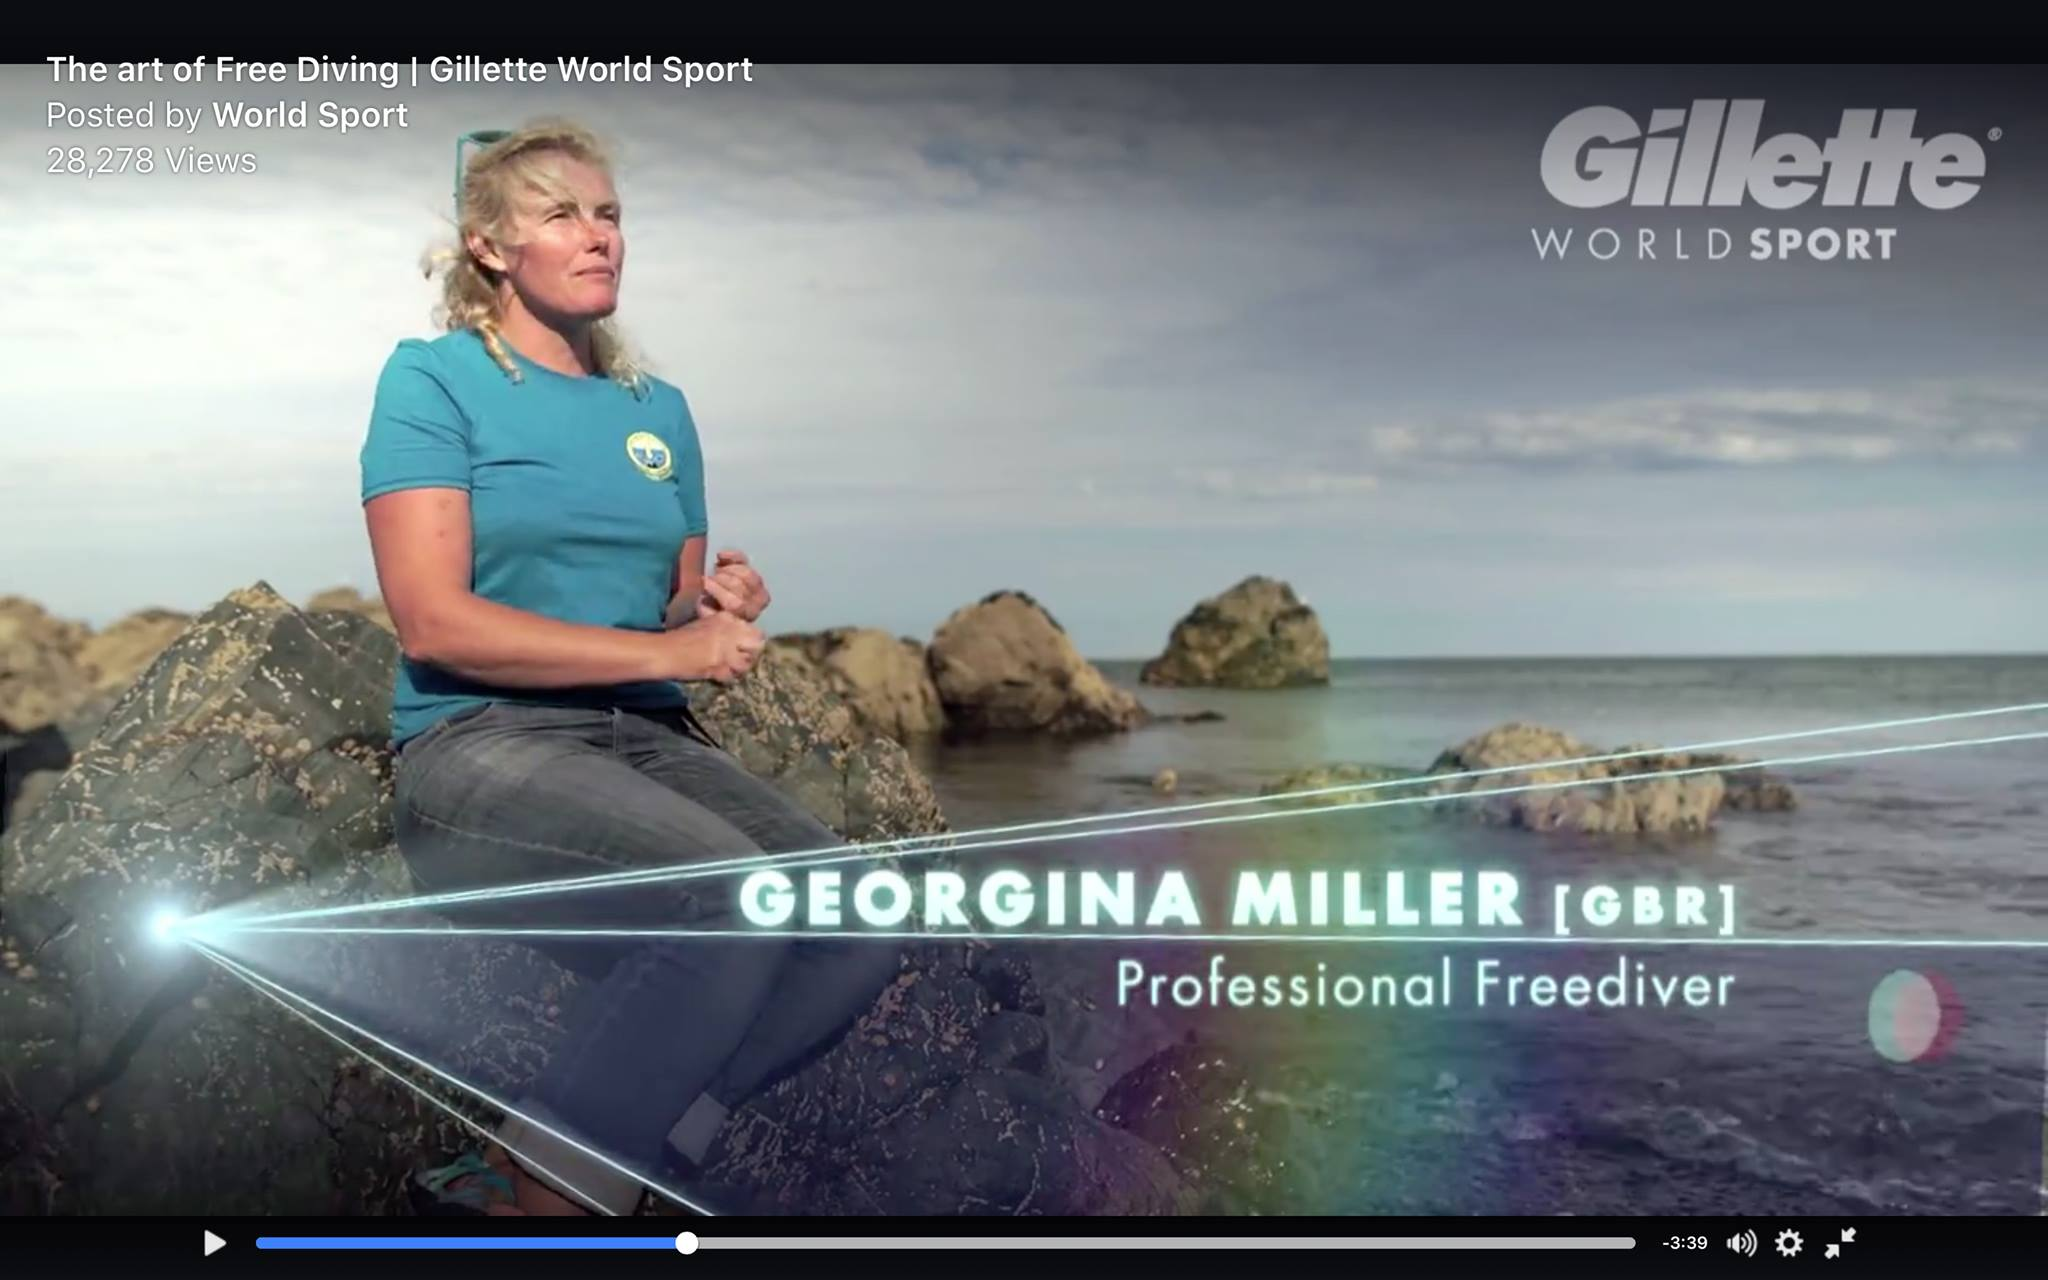 Georgina Miller professional freediver and UK National Team member in artwork for Gillette advertising